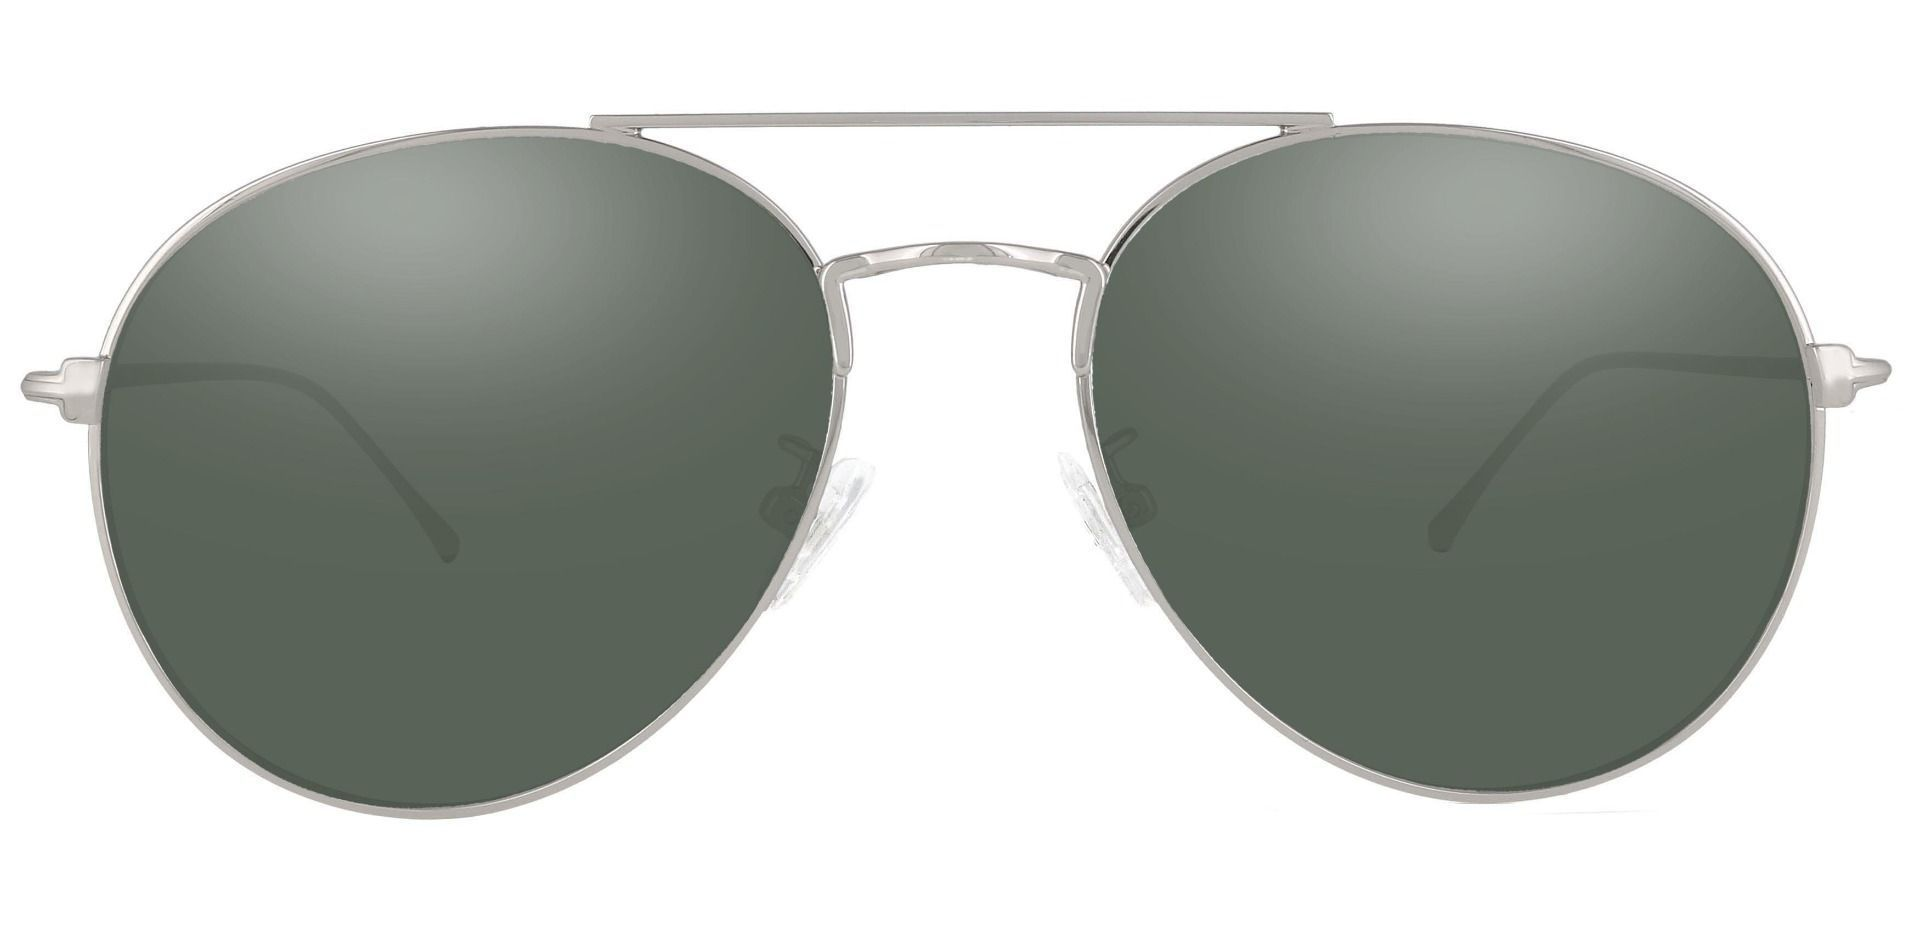 Canon Aviator Single Vision Sunglasses - Silver Frame With Green Lenses